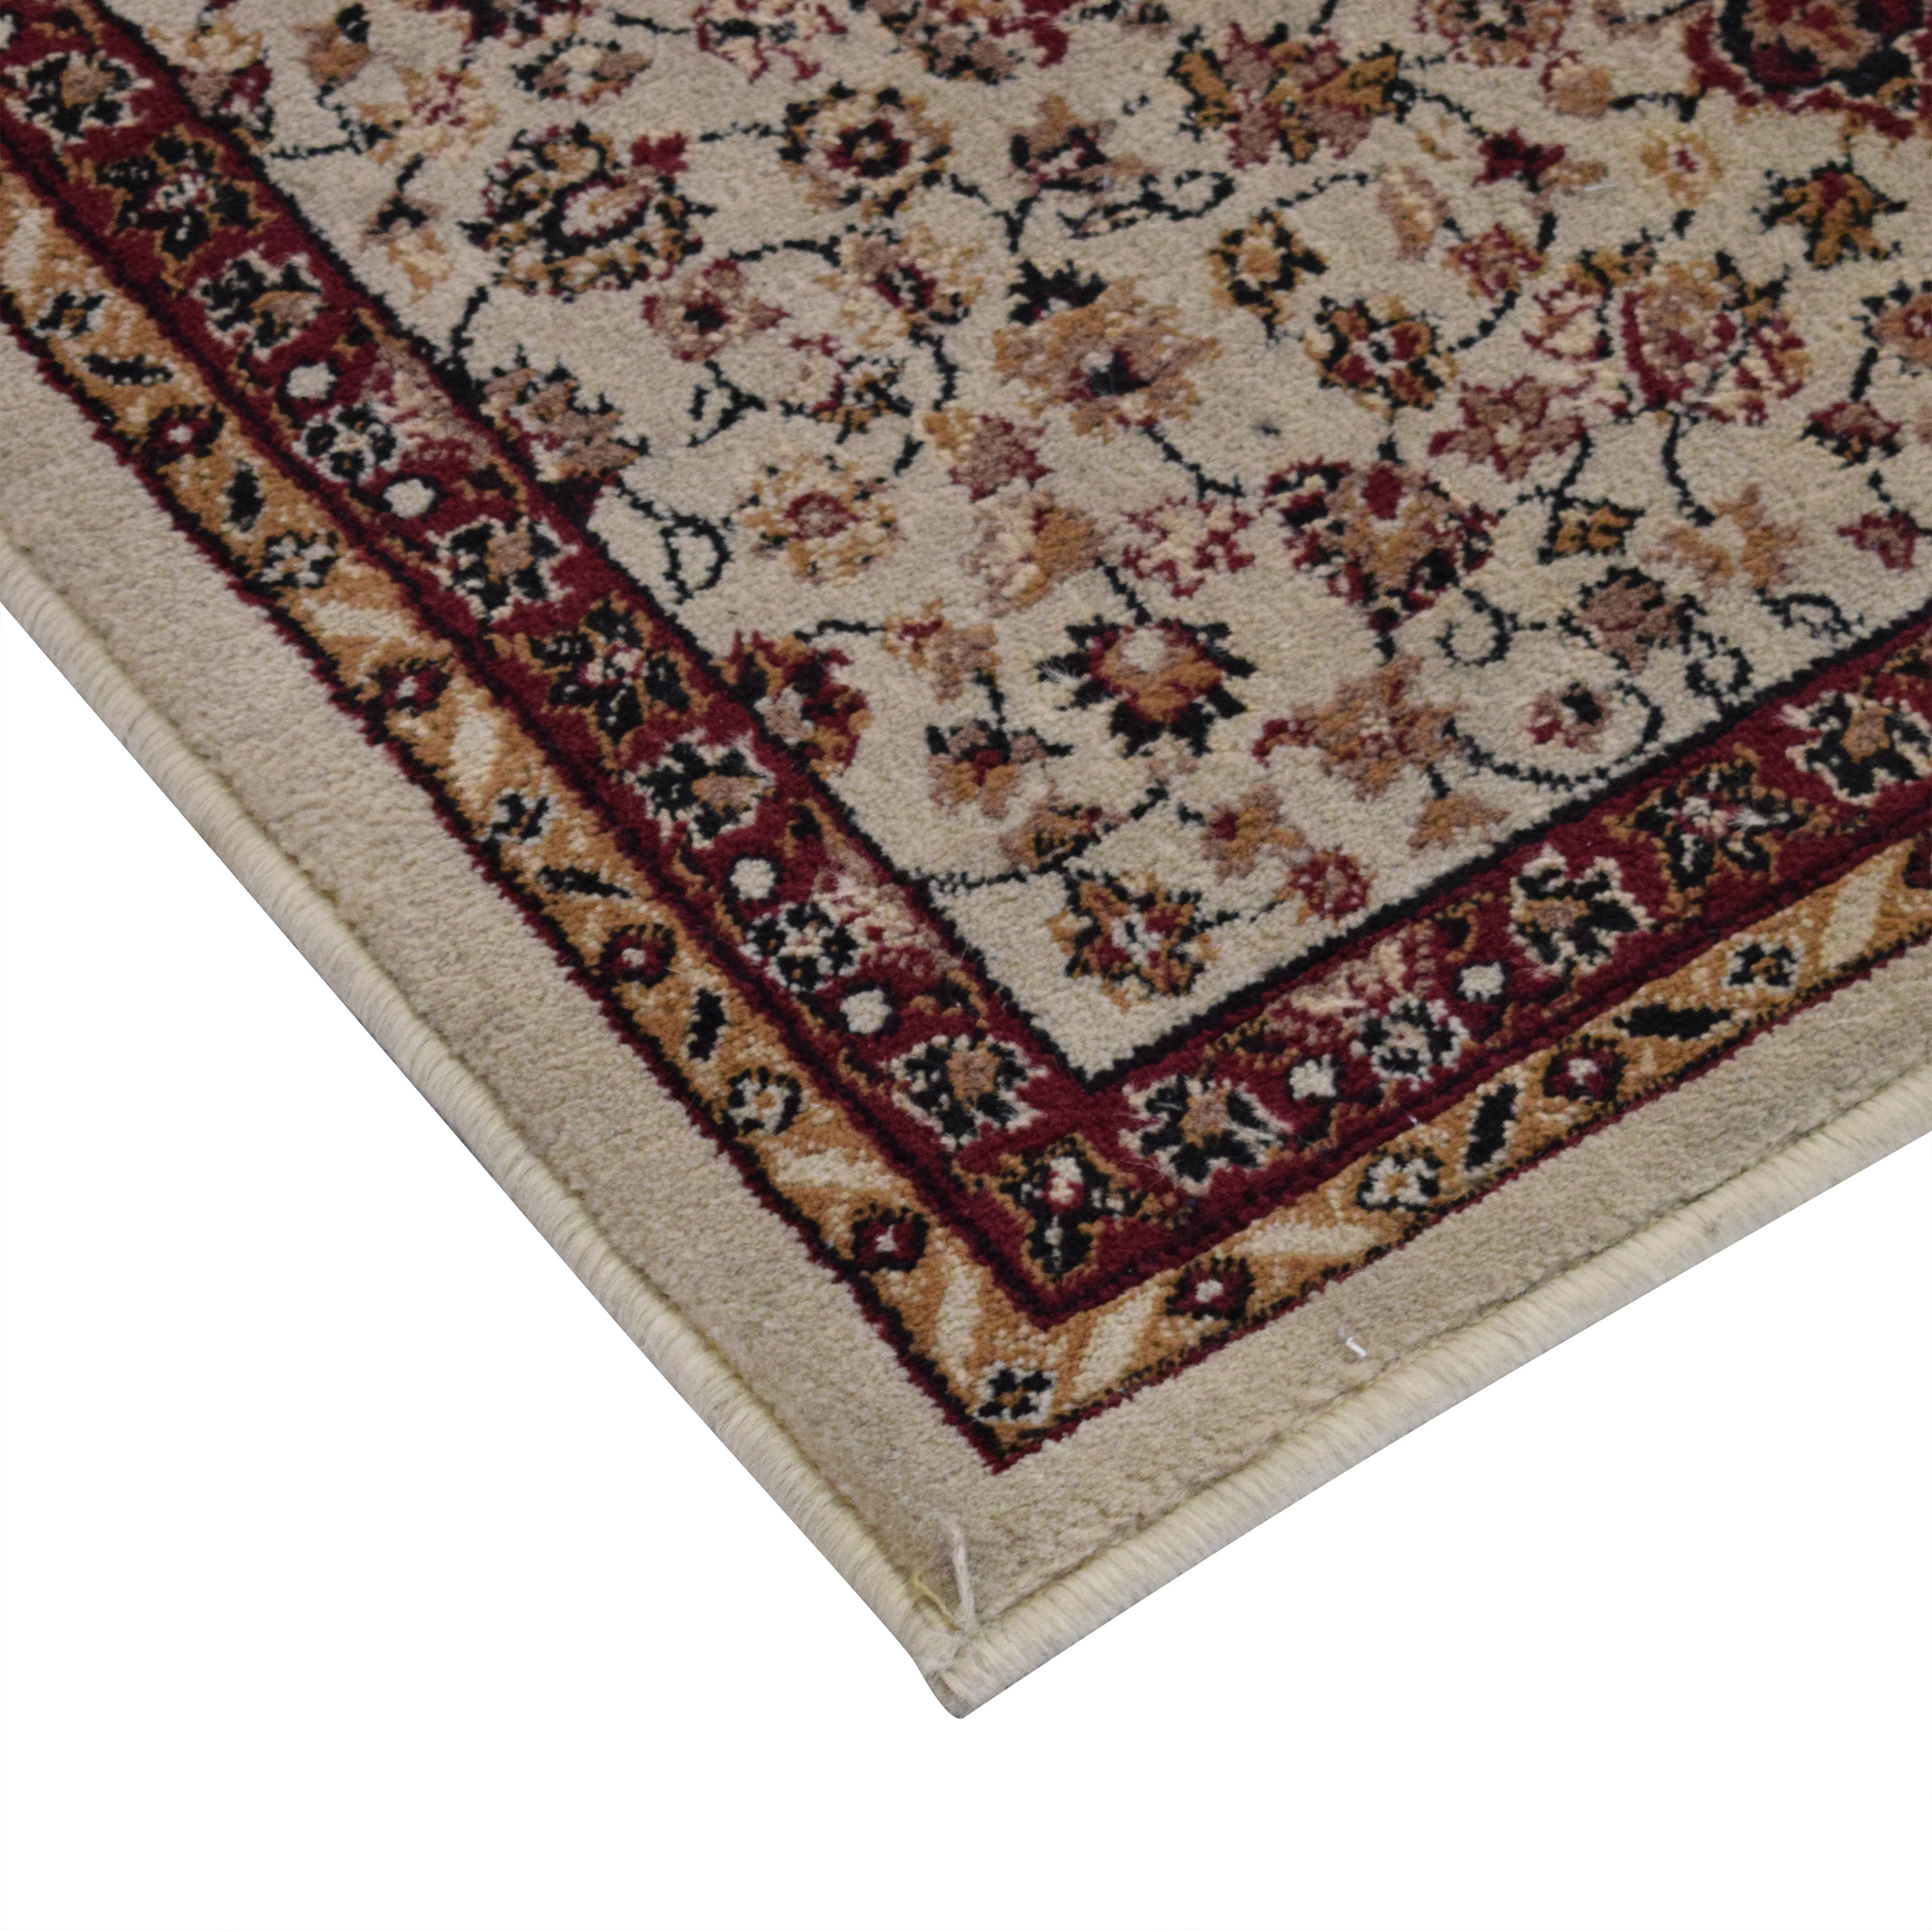 The Rug House Brown Rubber Backed Very Long Hallway Hall Runner Narrow Rugs Custom Length Sold and Priced Per Foot